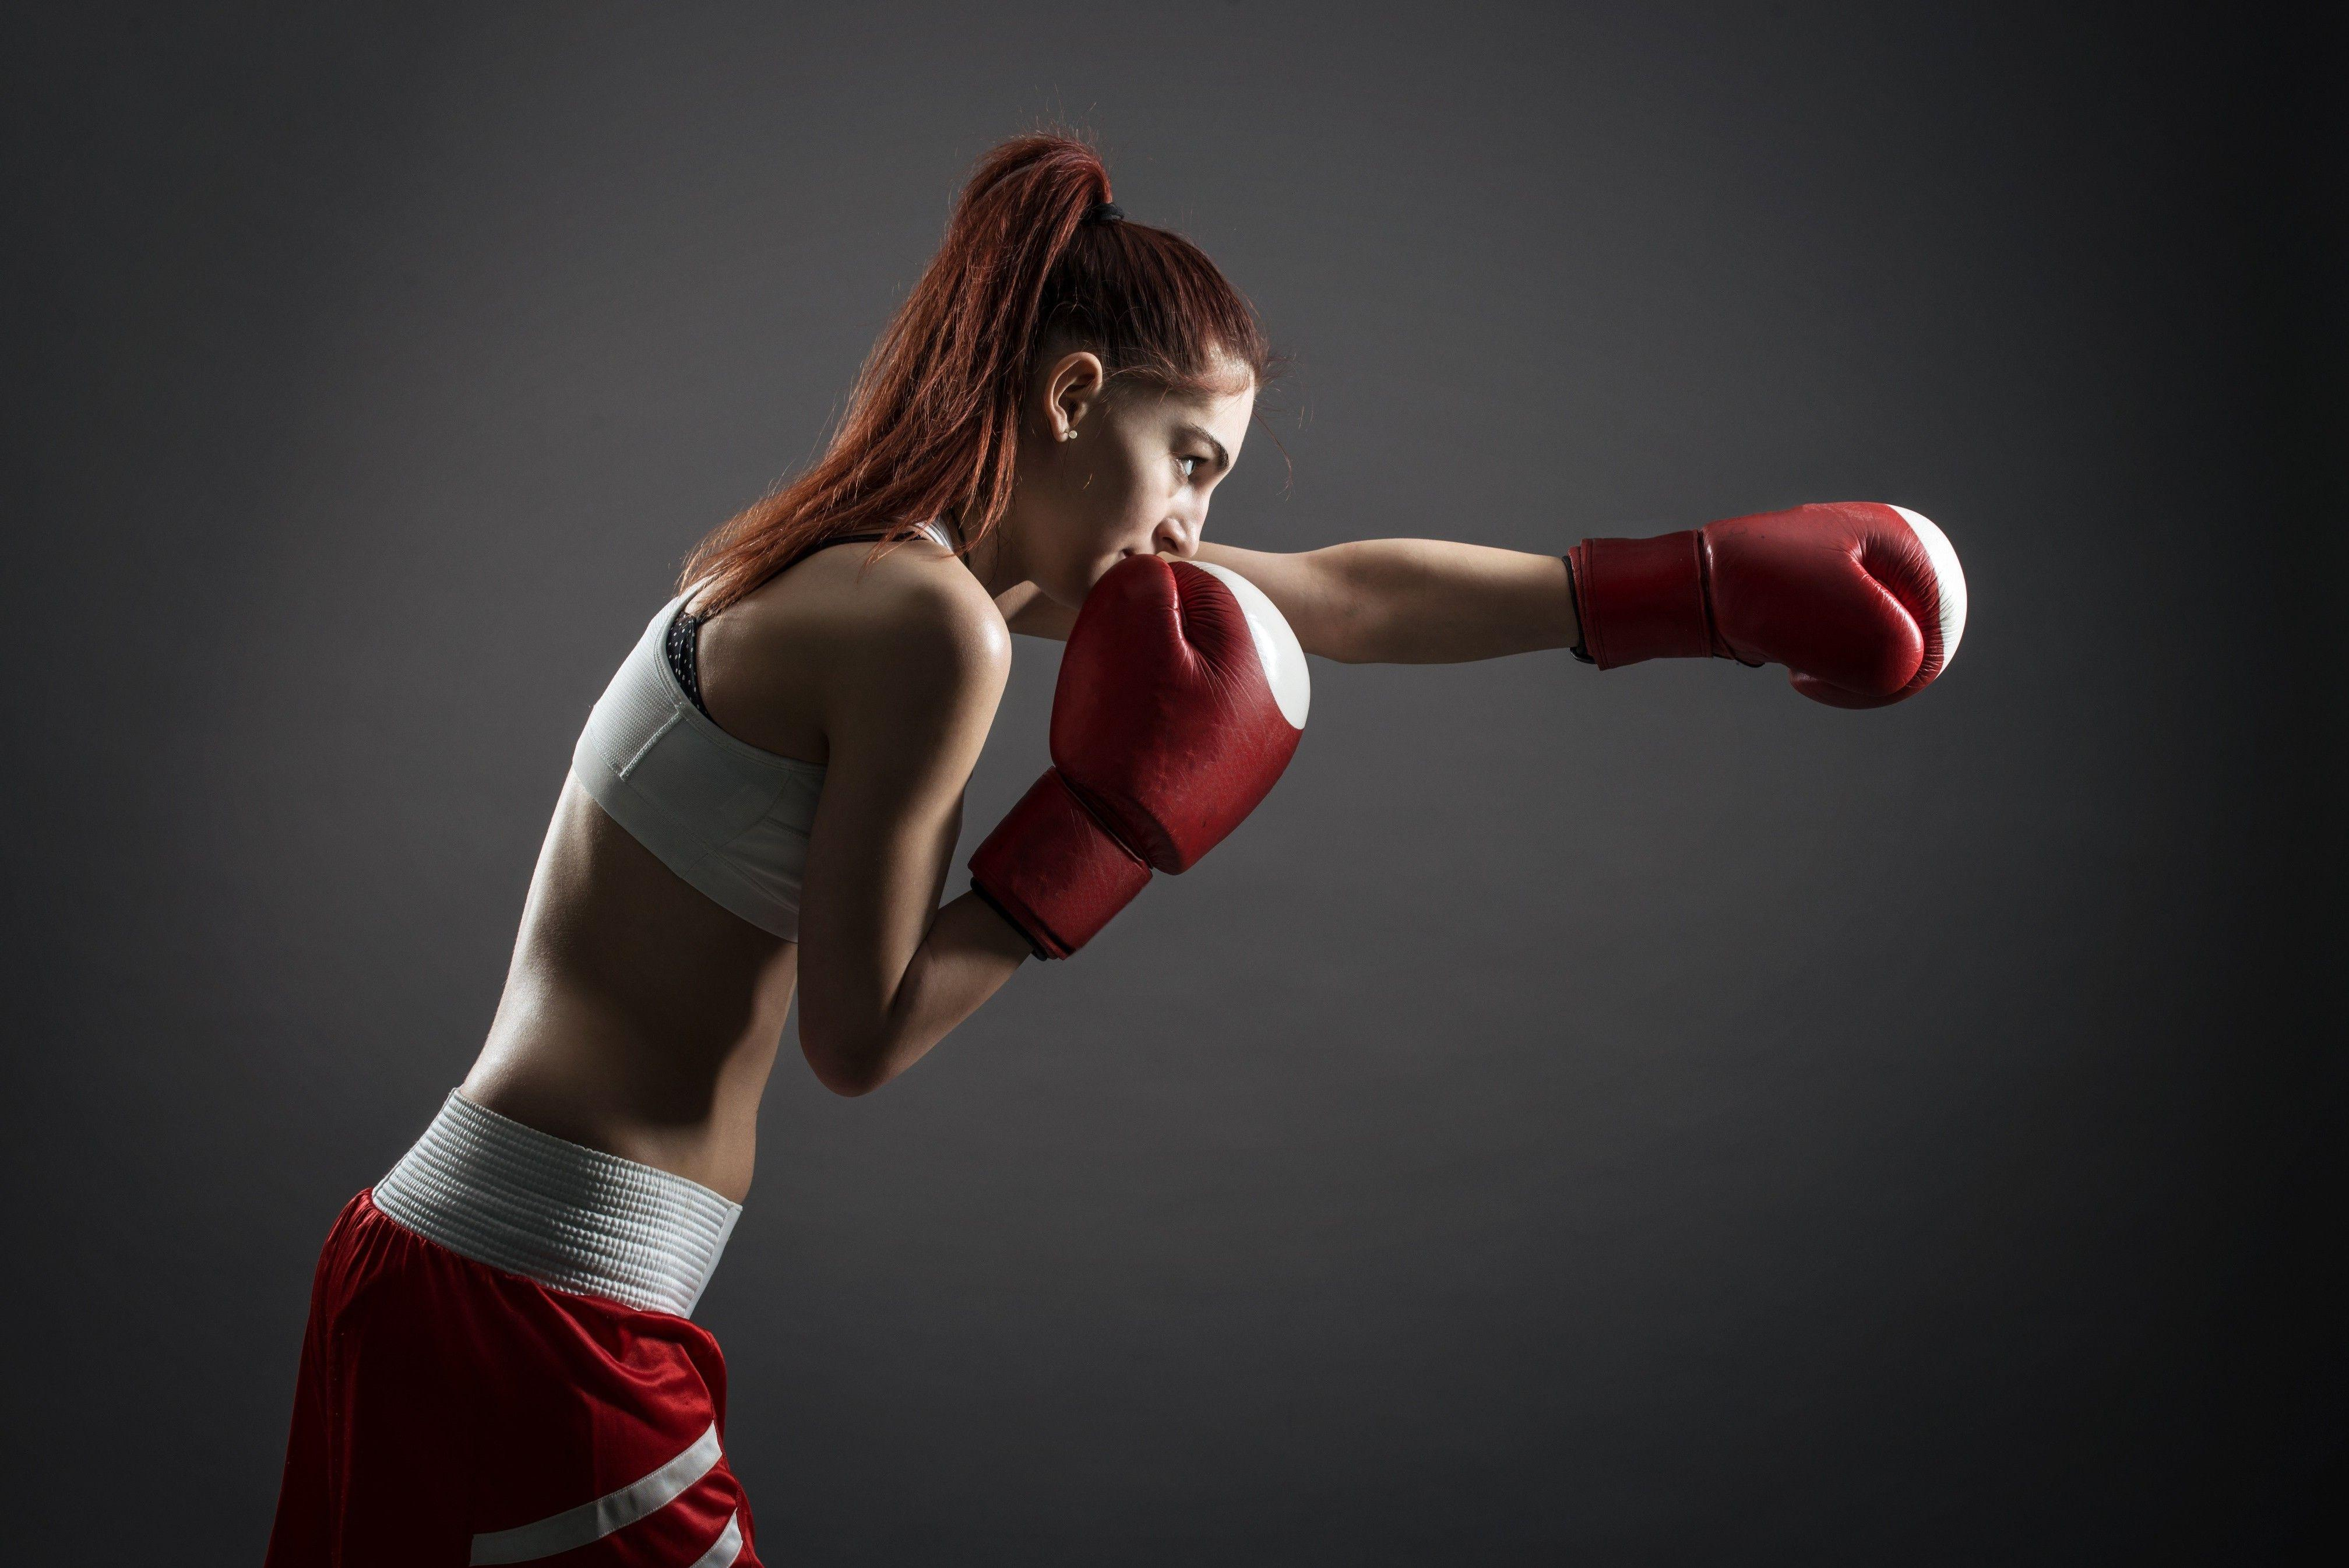 Female Boxing Wallpapers Top Free Female Boxing Backgrounds Wallpaperaccess